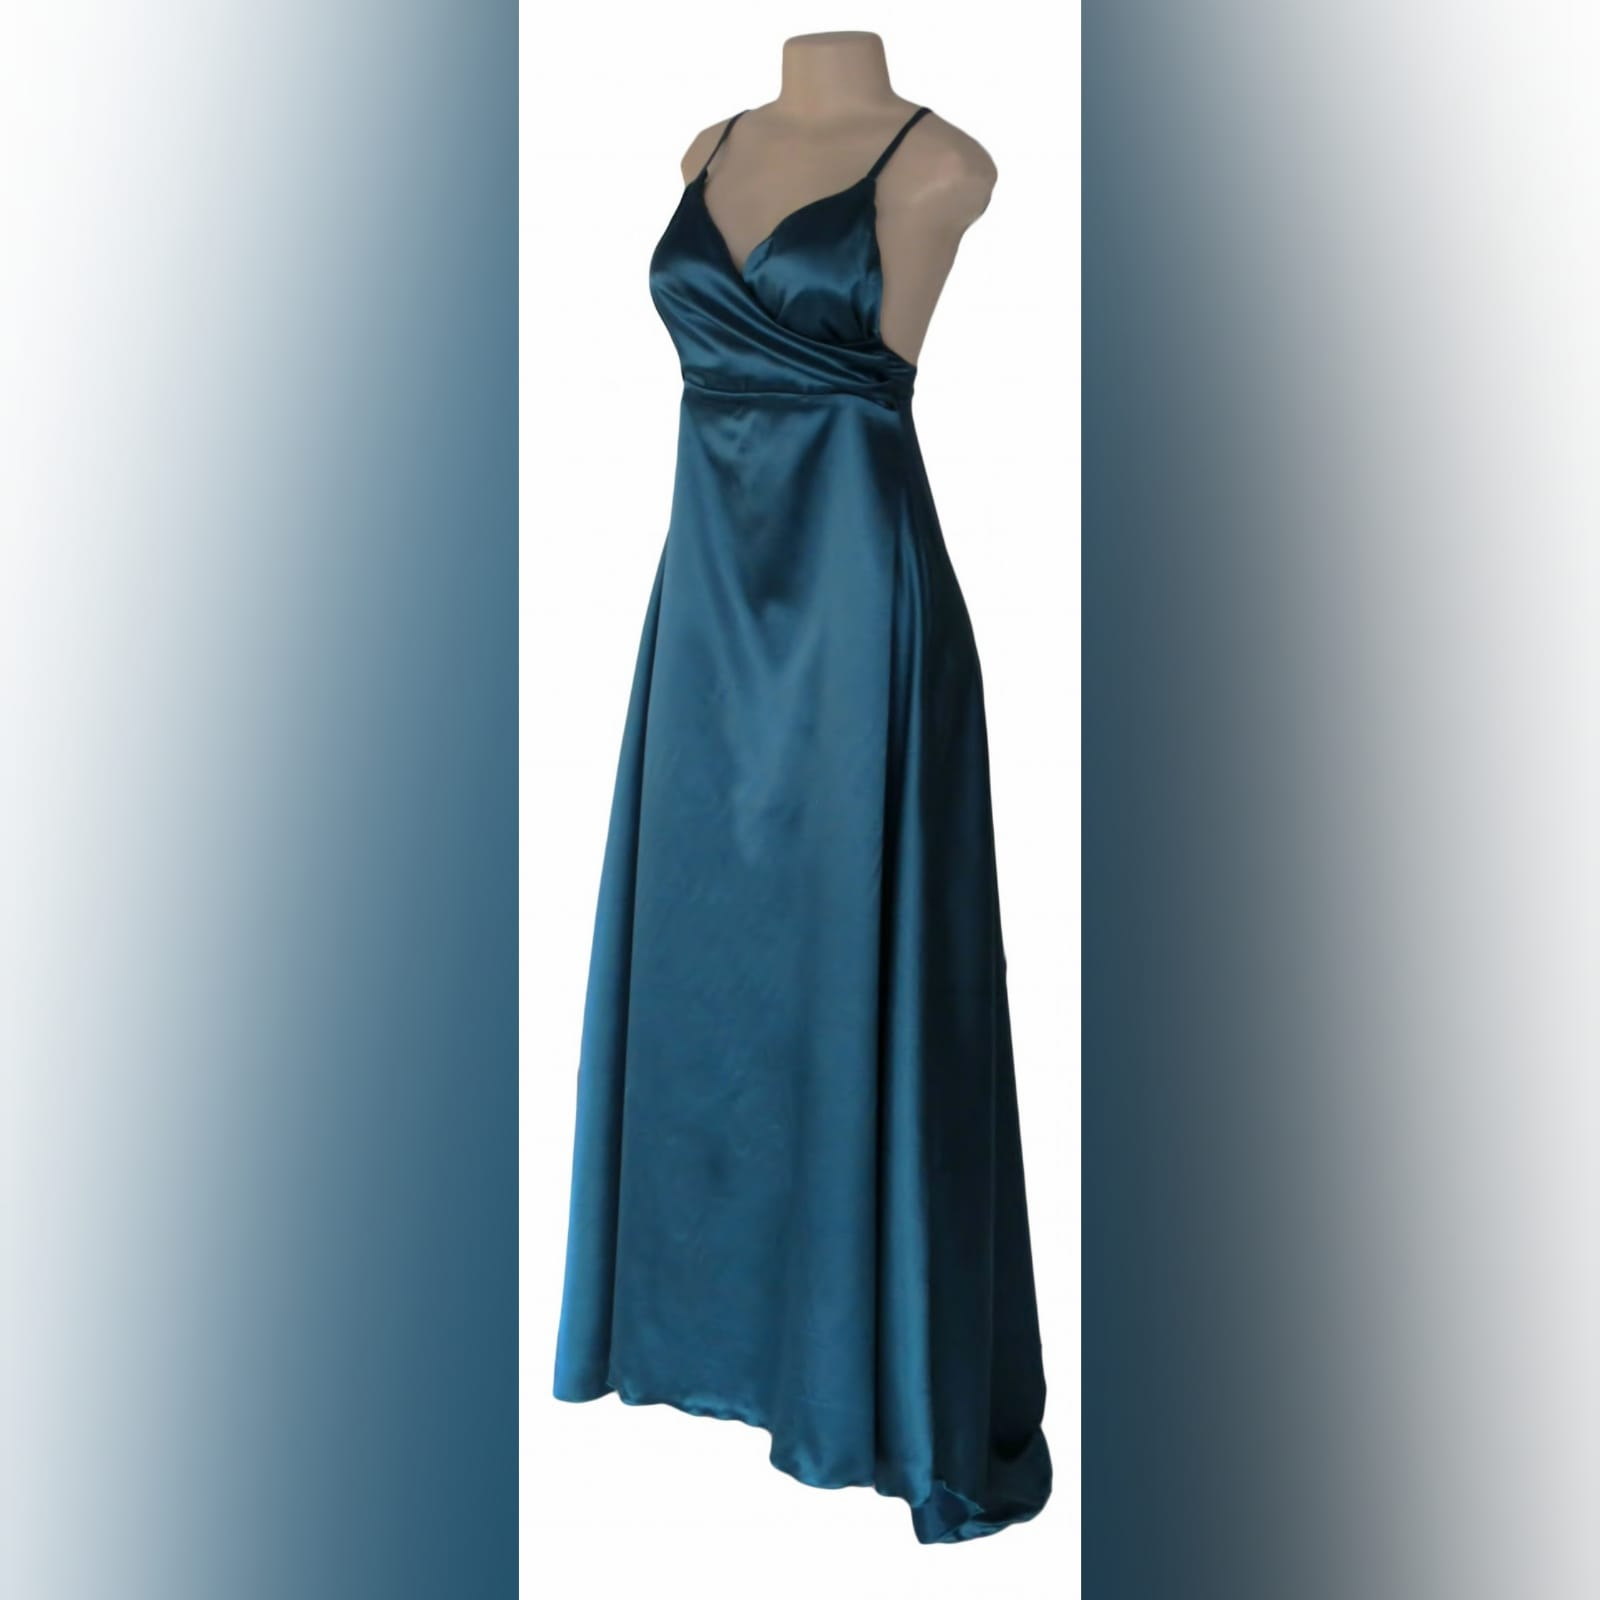 Teal long satin evening dress 1 teal long satin evening dress with a crossed bust neckline, backless design with 2 thin straps. With a small train.